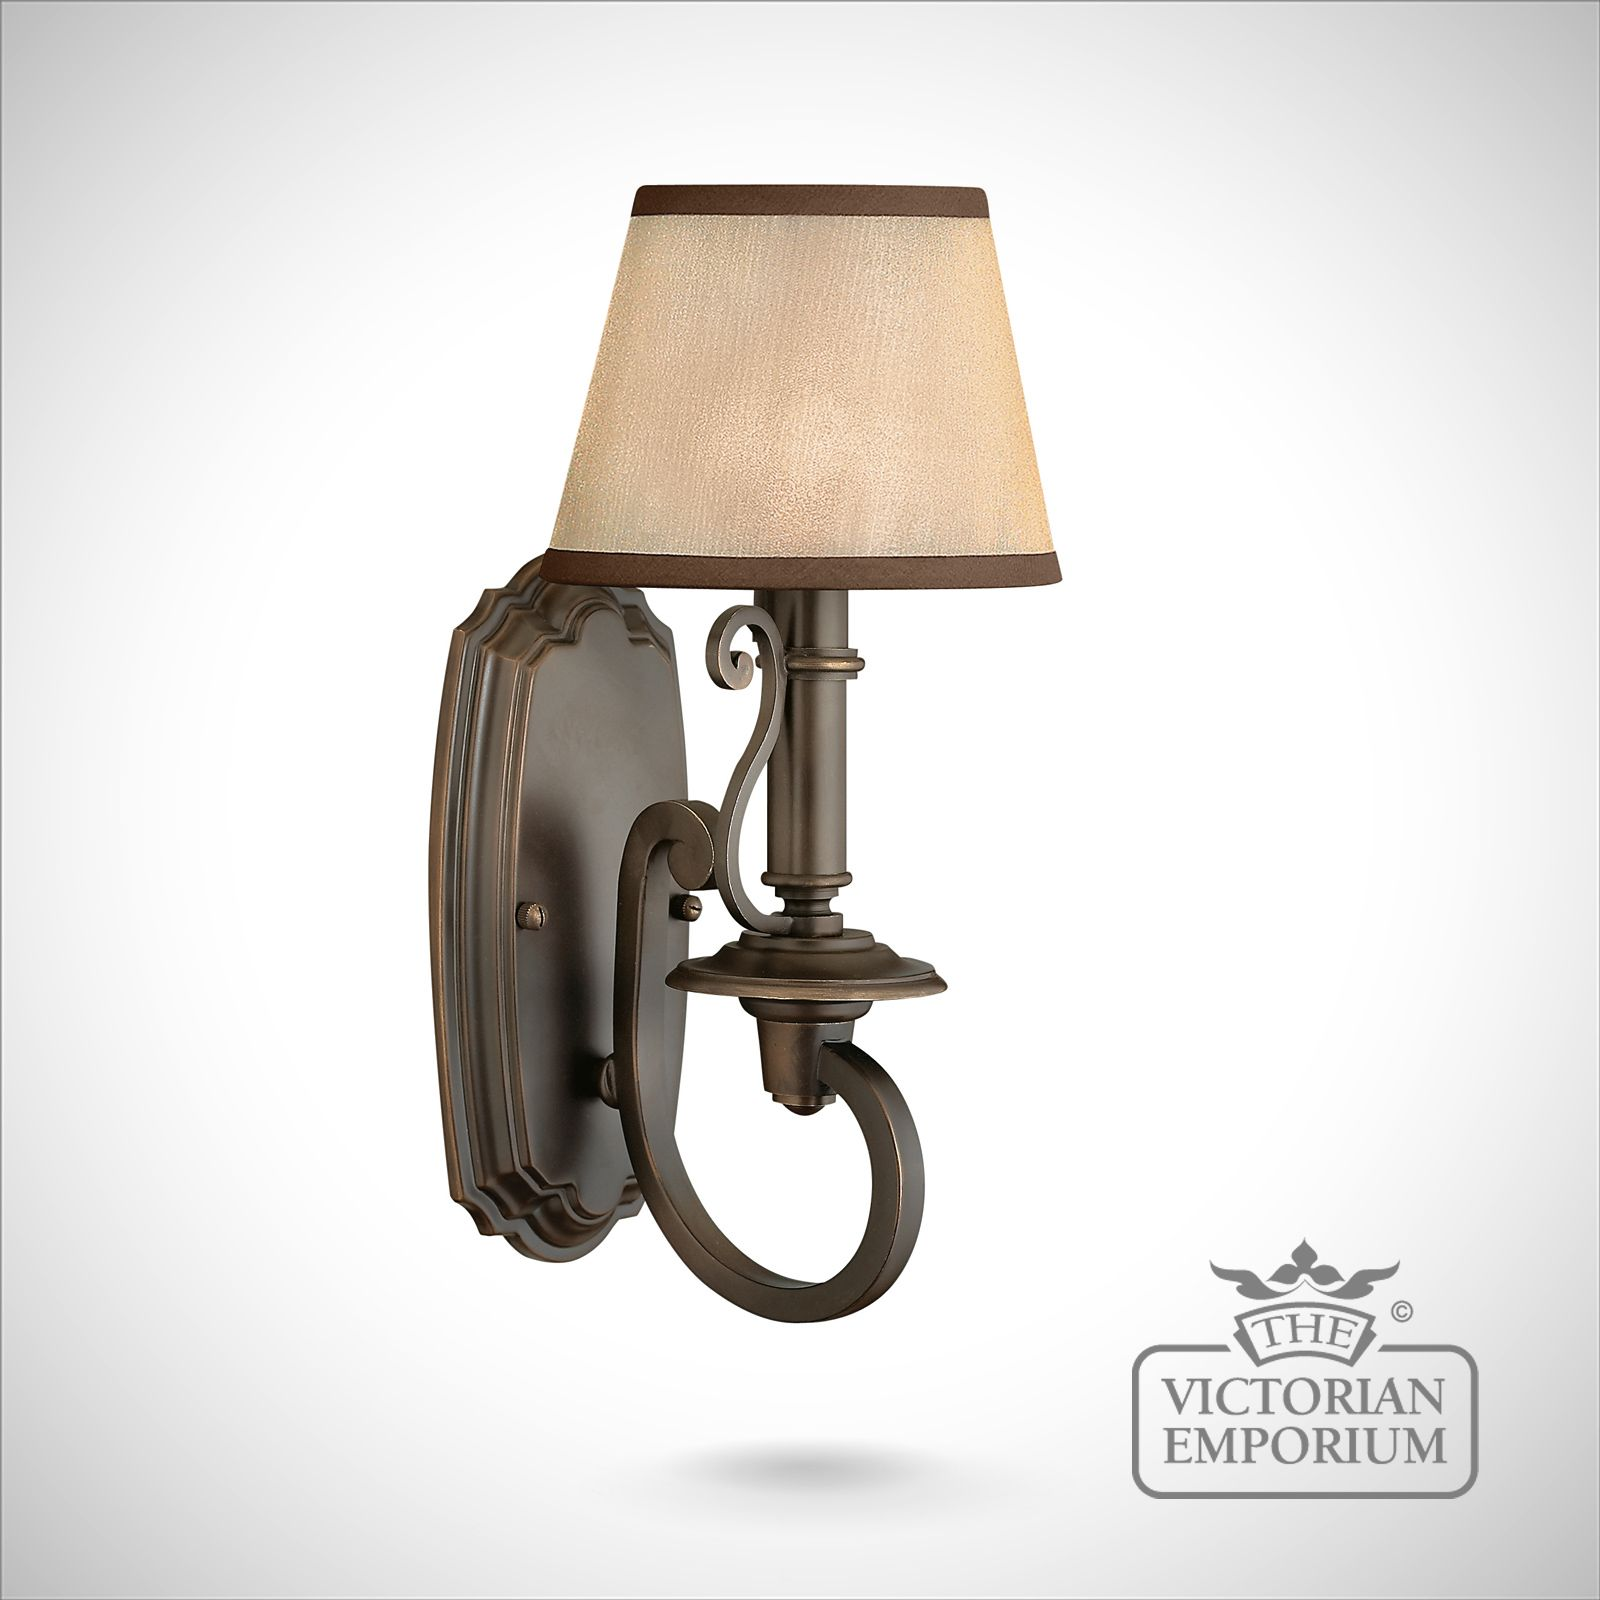 Plymouth wall sconce Interior Wall Lights